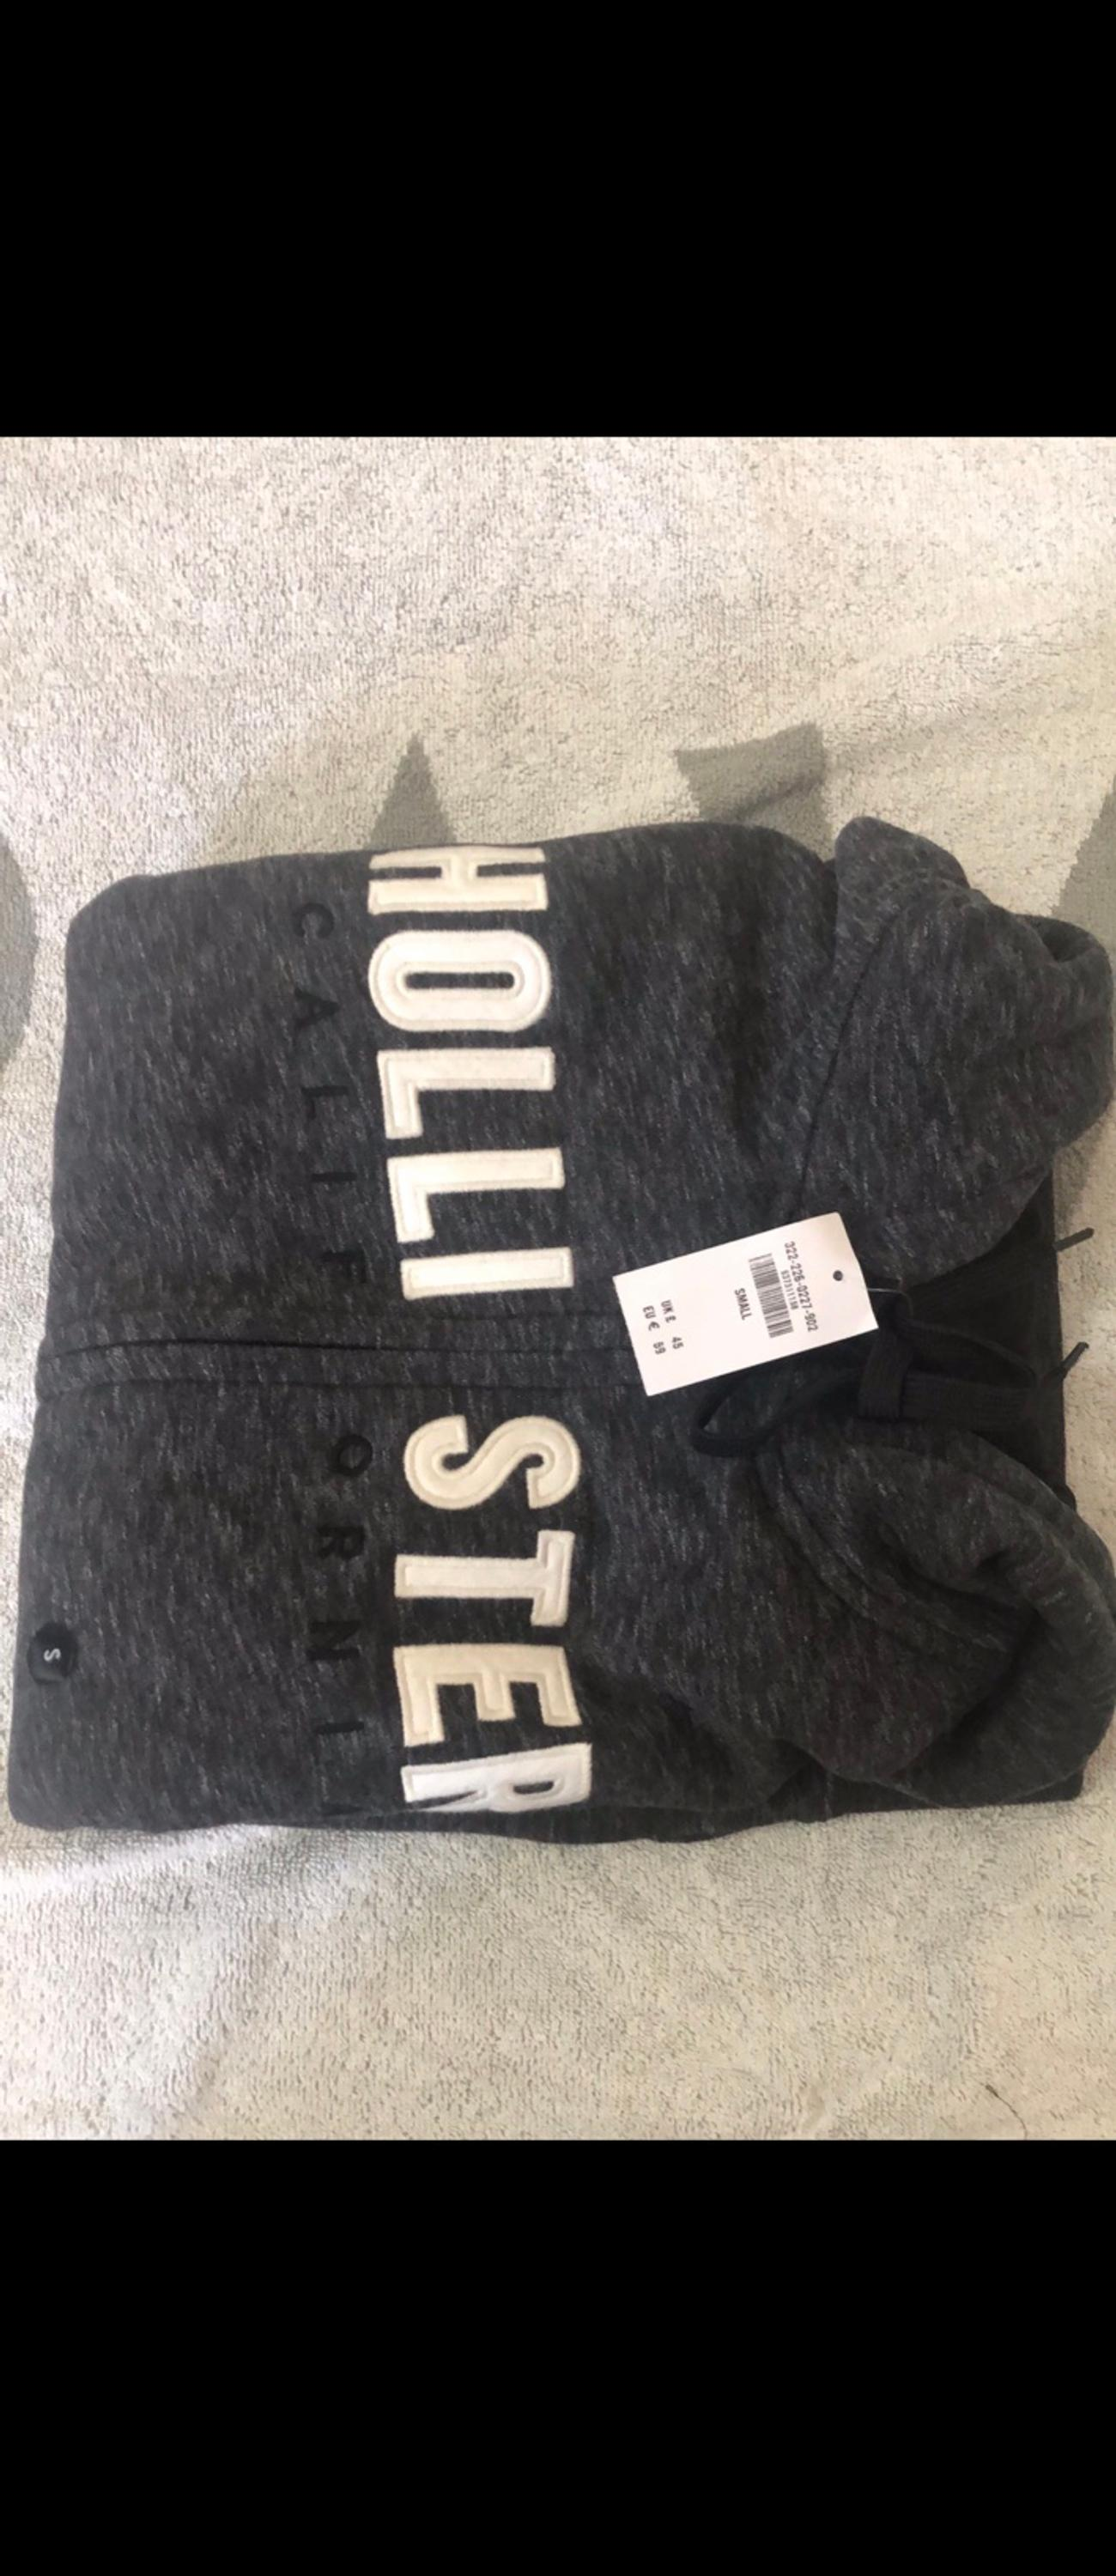 Brand new holister hoodie Size small Sensible offer welcome Collect from east ham also can postage availble with extra fees Thanks 🙏